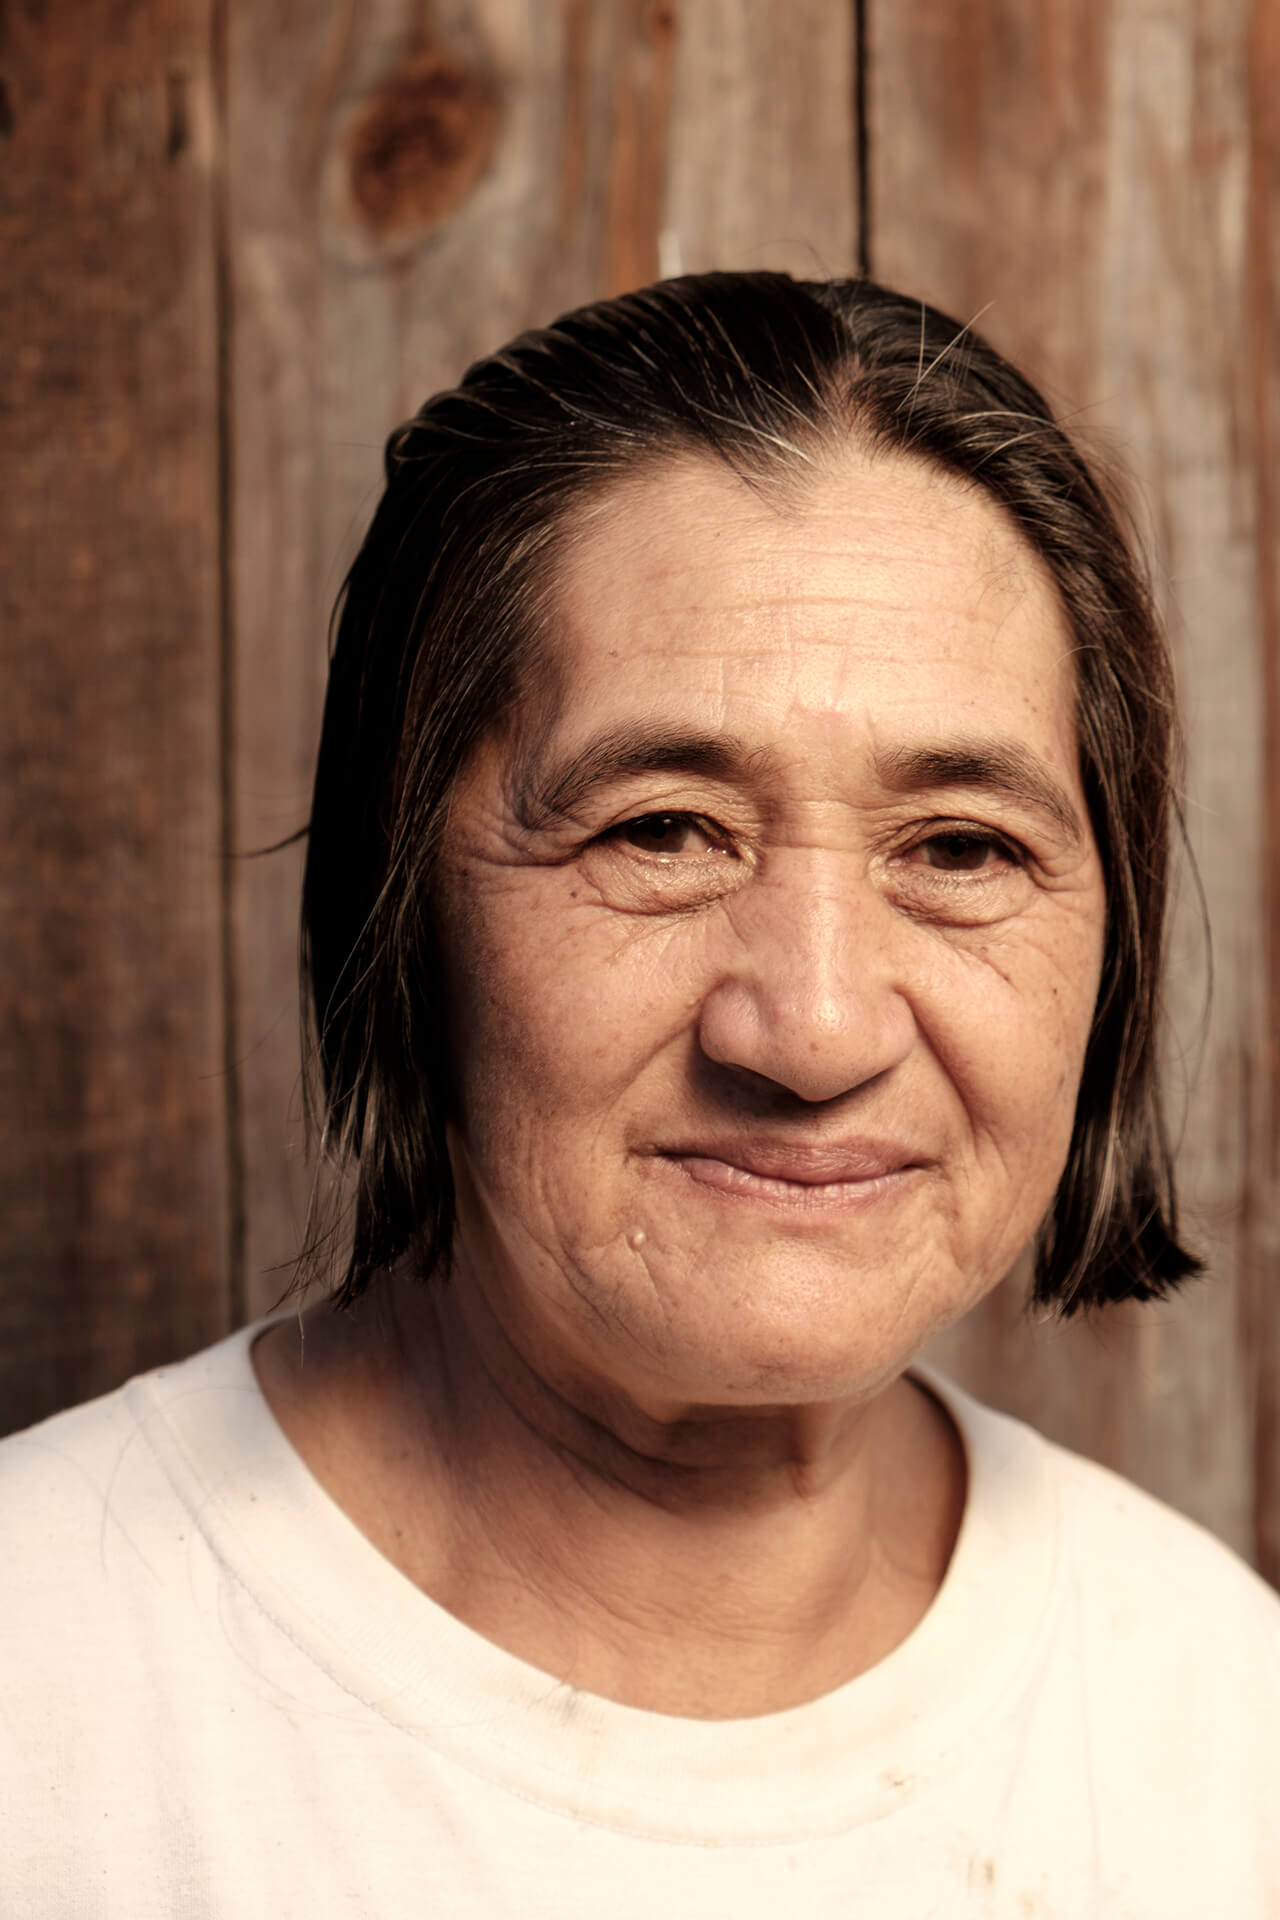 AUNTIE FLORENCE. Mother, farmer, kamote grower, and community storyteller.